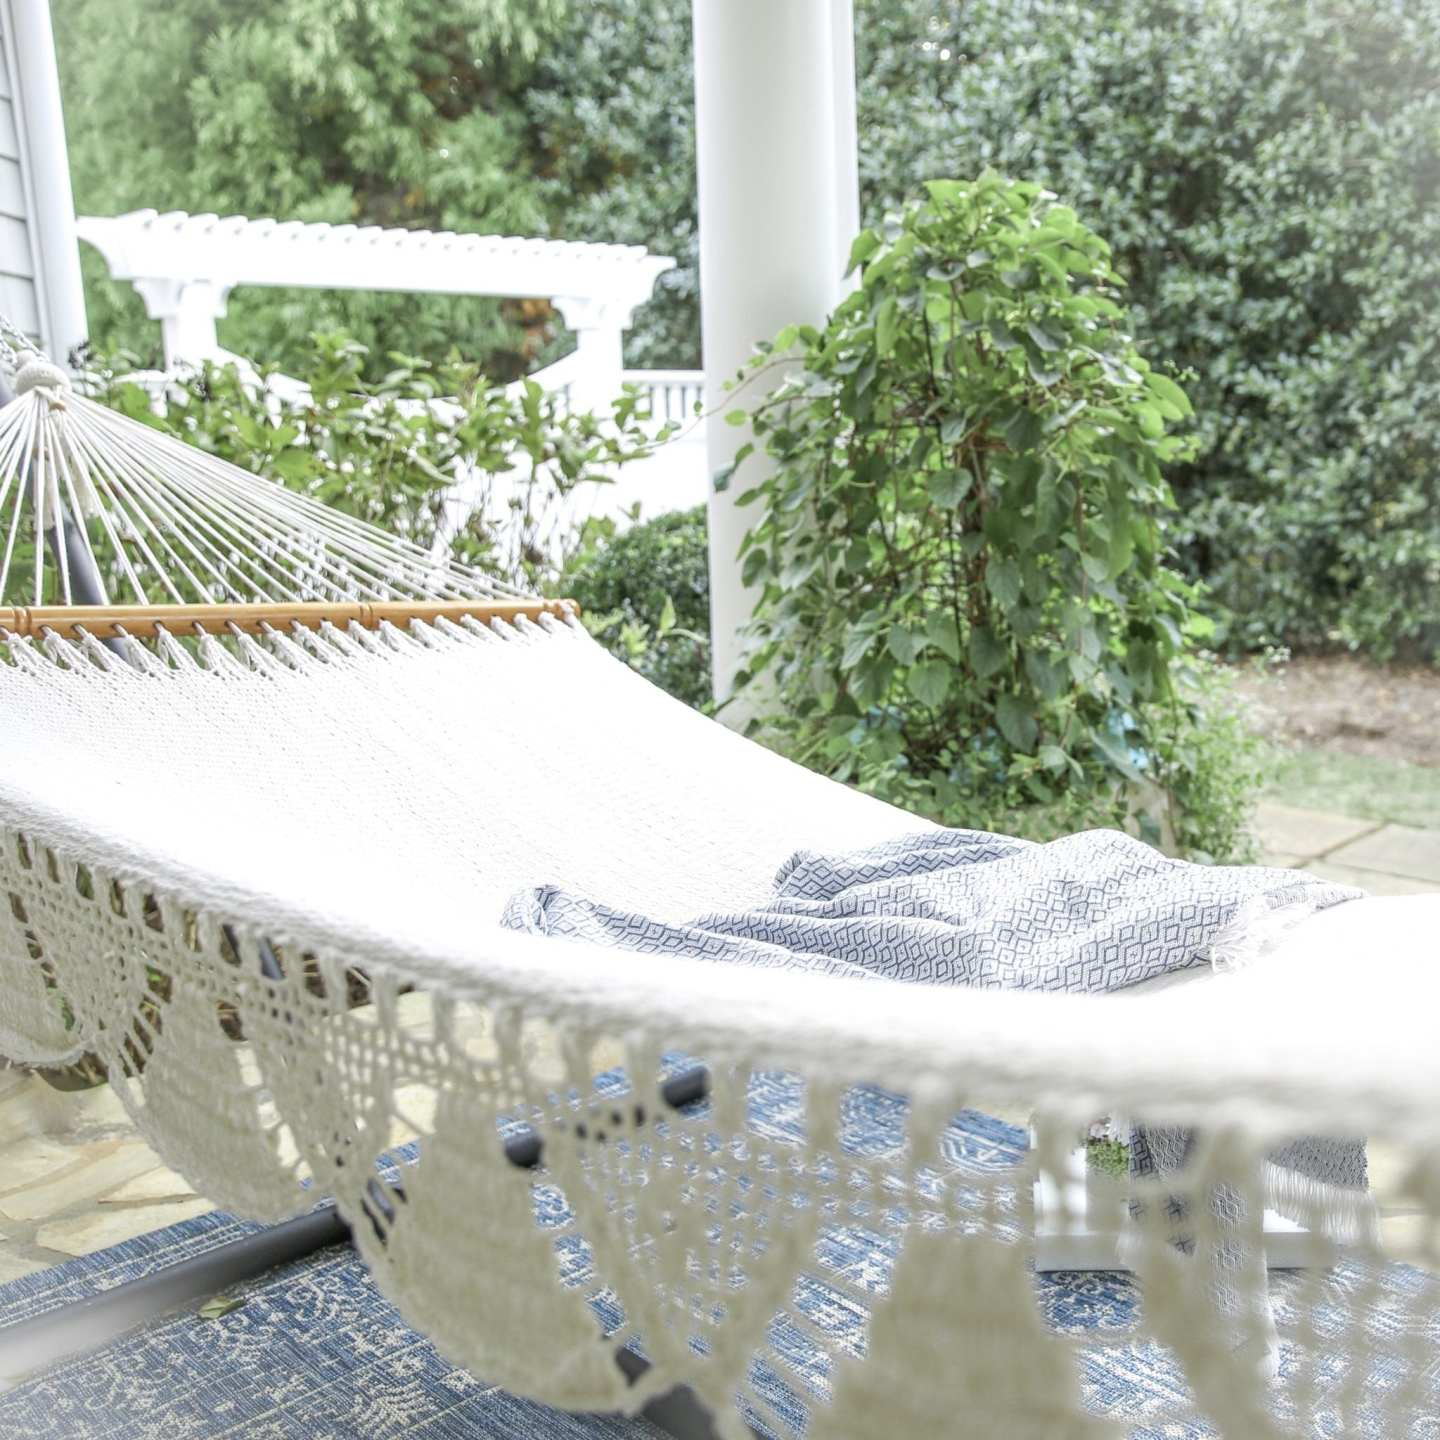 woven hammock outside with indoor outdoor blanket by cape code white gate and climbing hydrangea bush